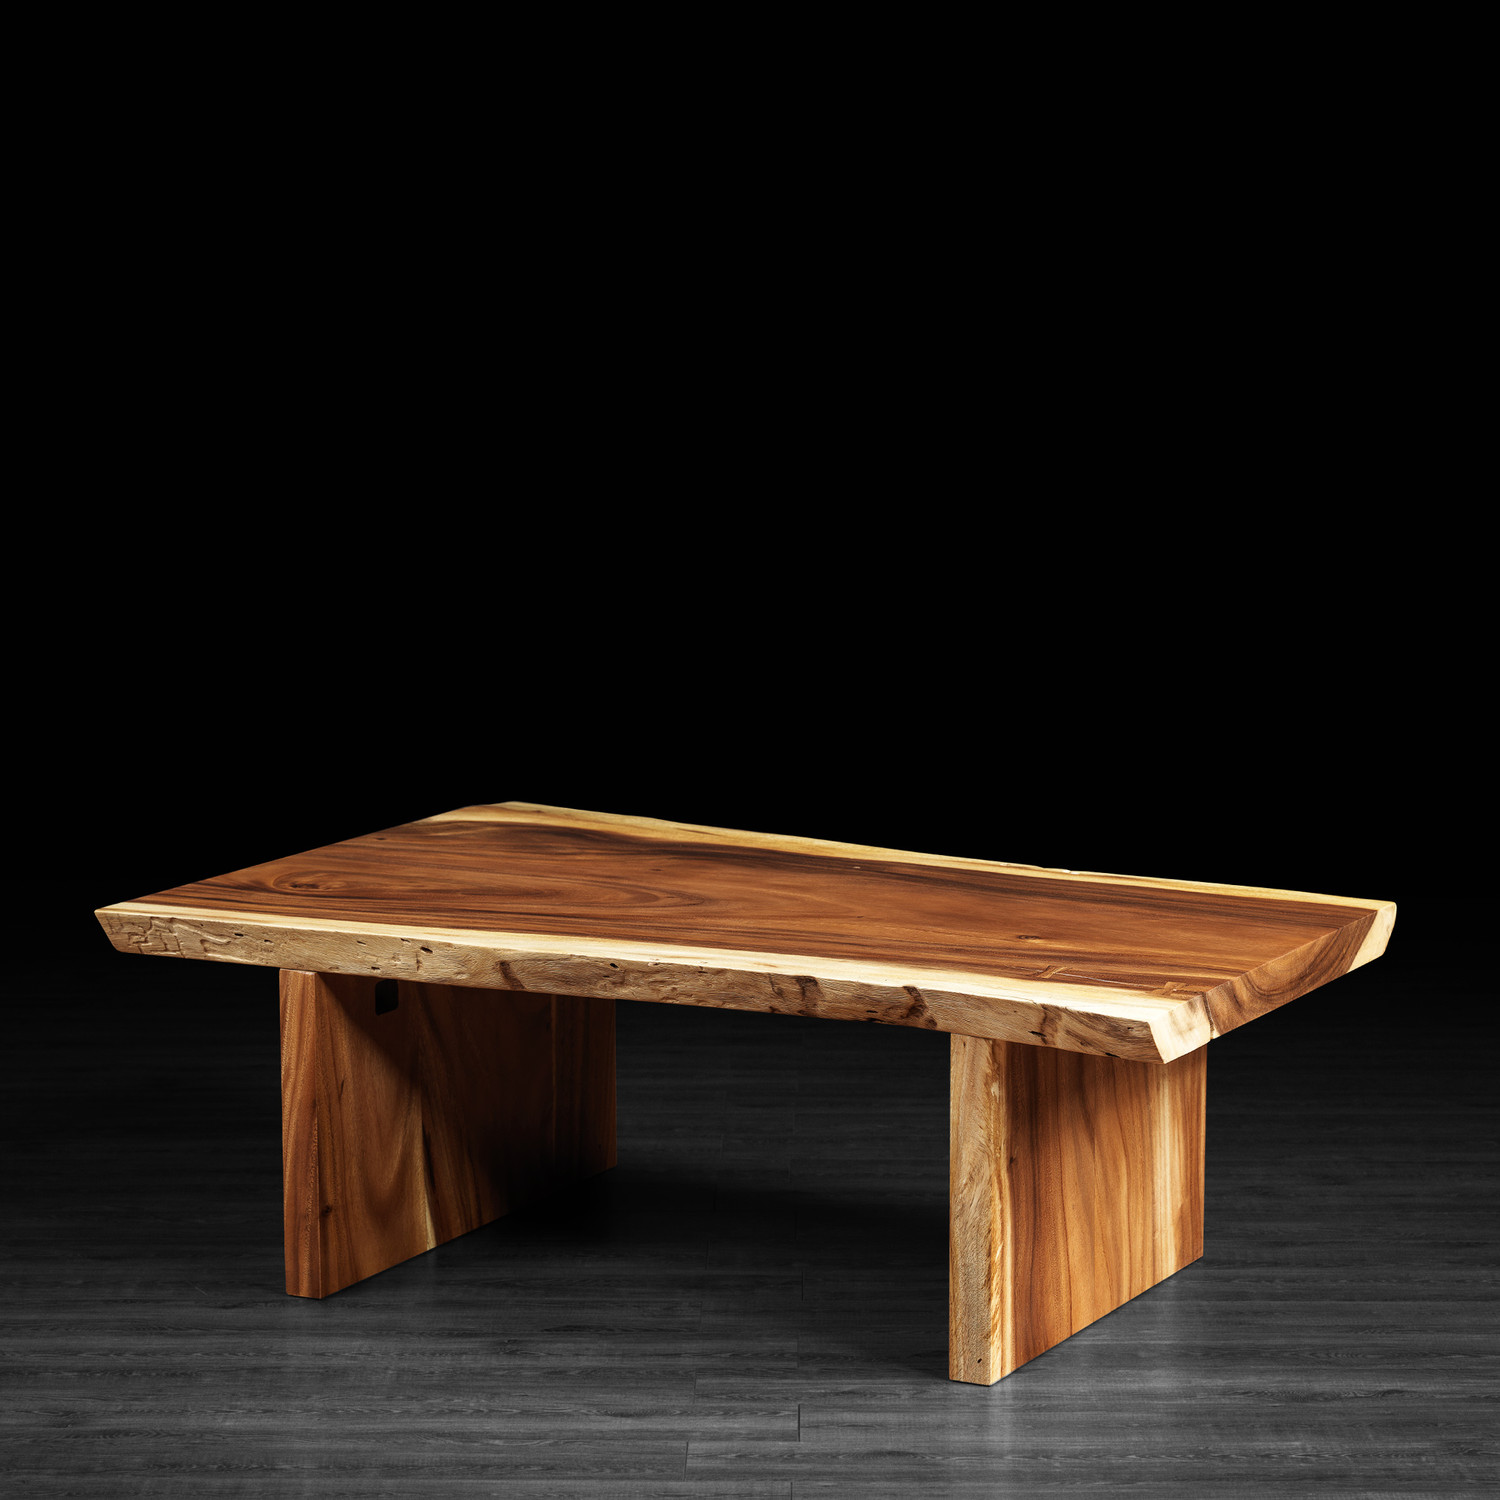 freeform suar wood coffee table wooden legs artemano touch of modern. Black Bedroom Furniture Sets. Home Design Ideas